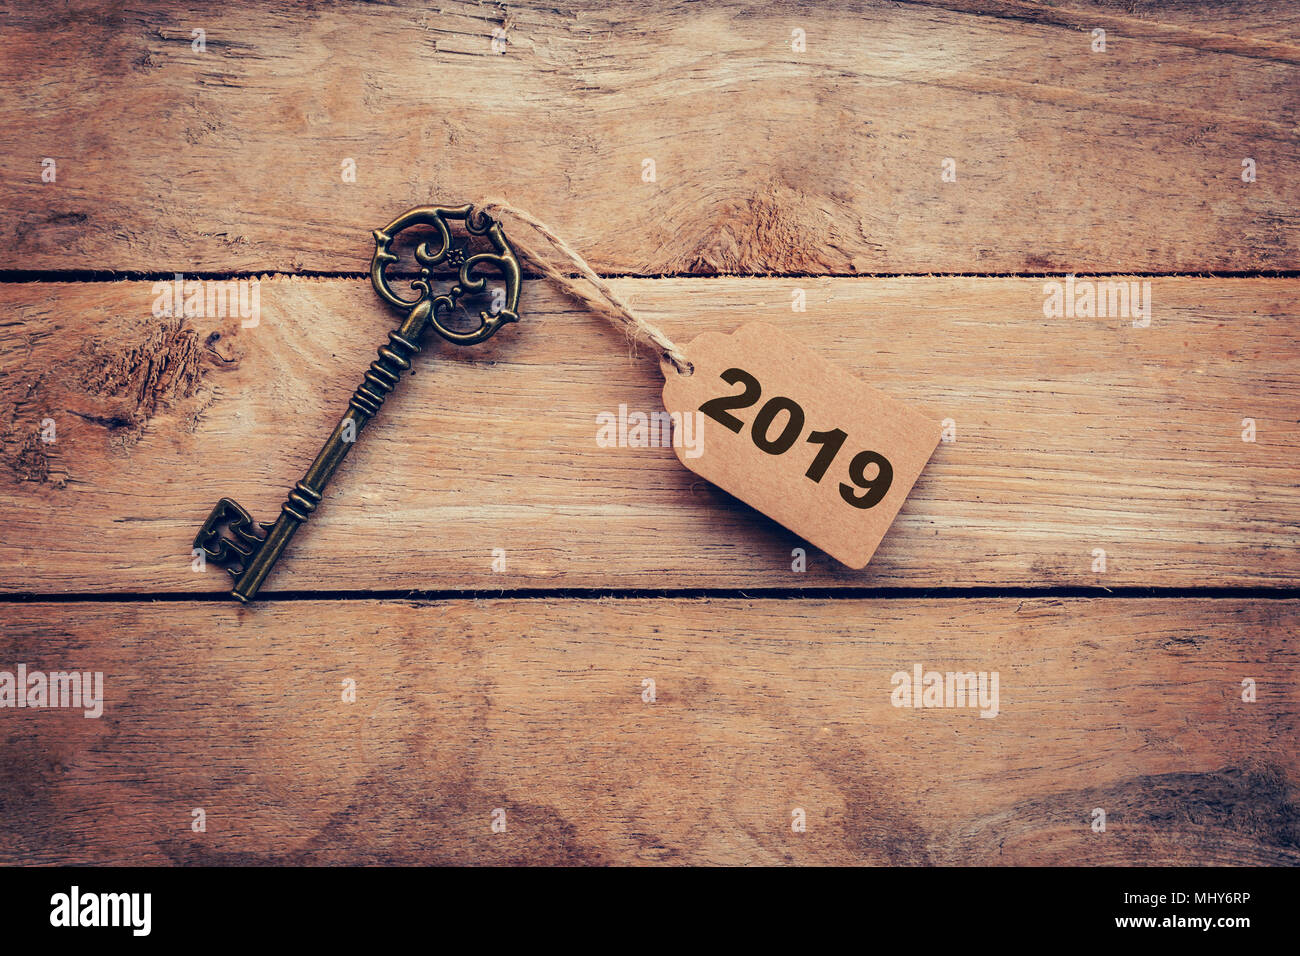 Business concept old key vintage with tag for New Year Resolution 2019. - Stock Image